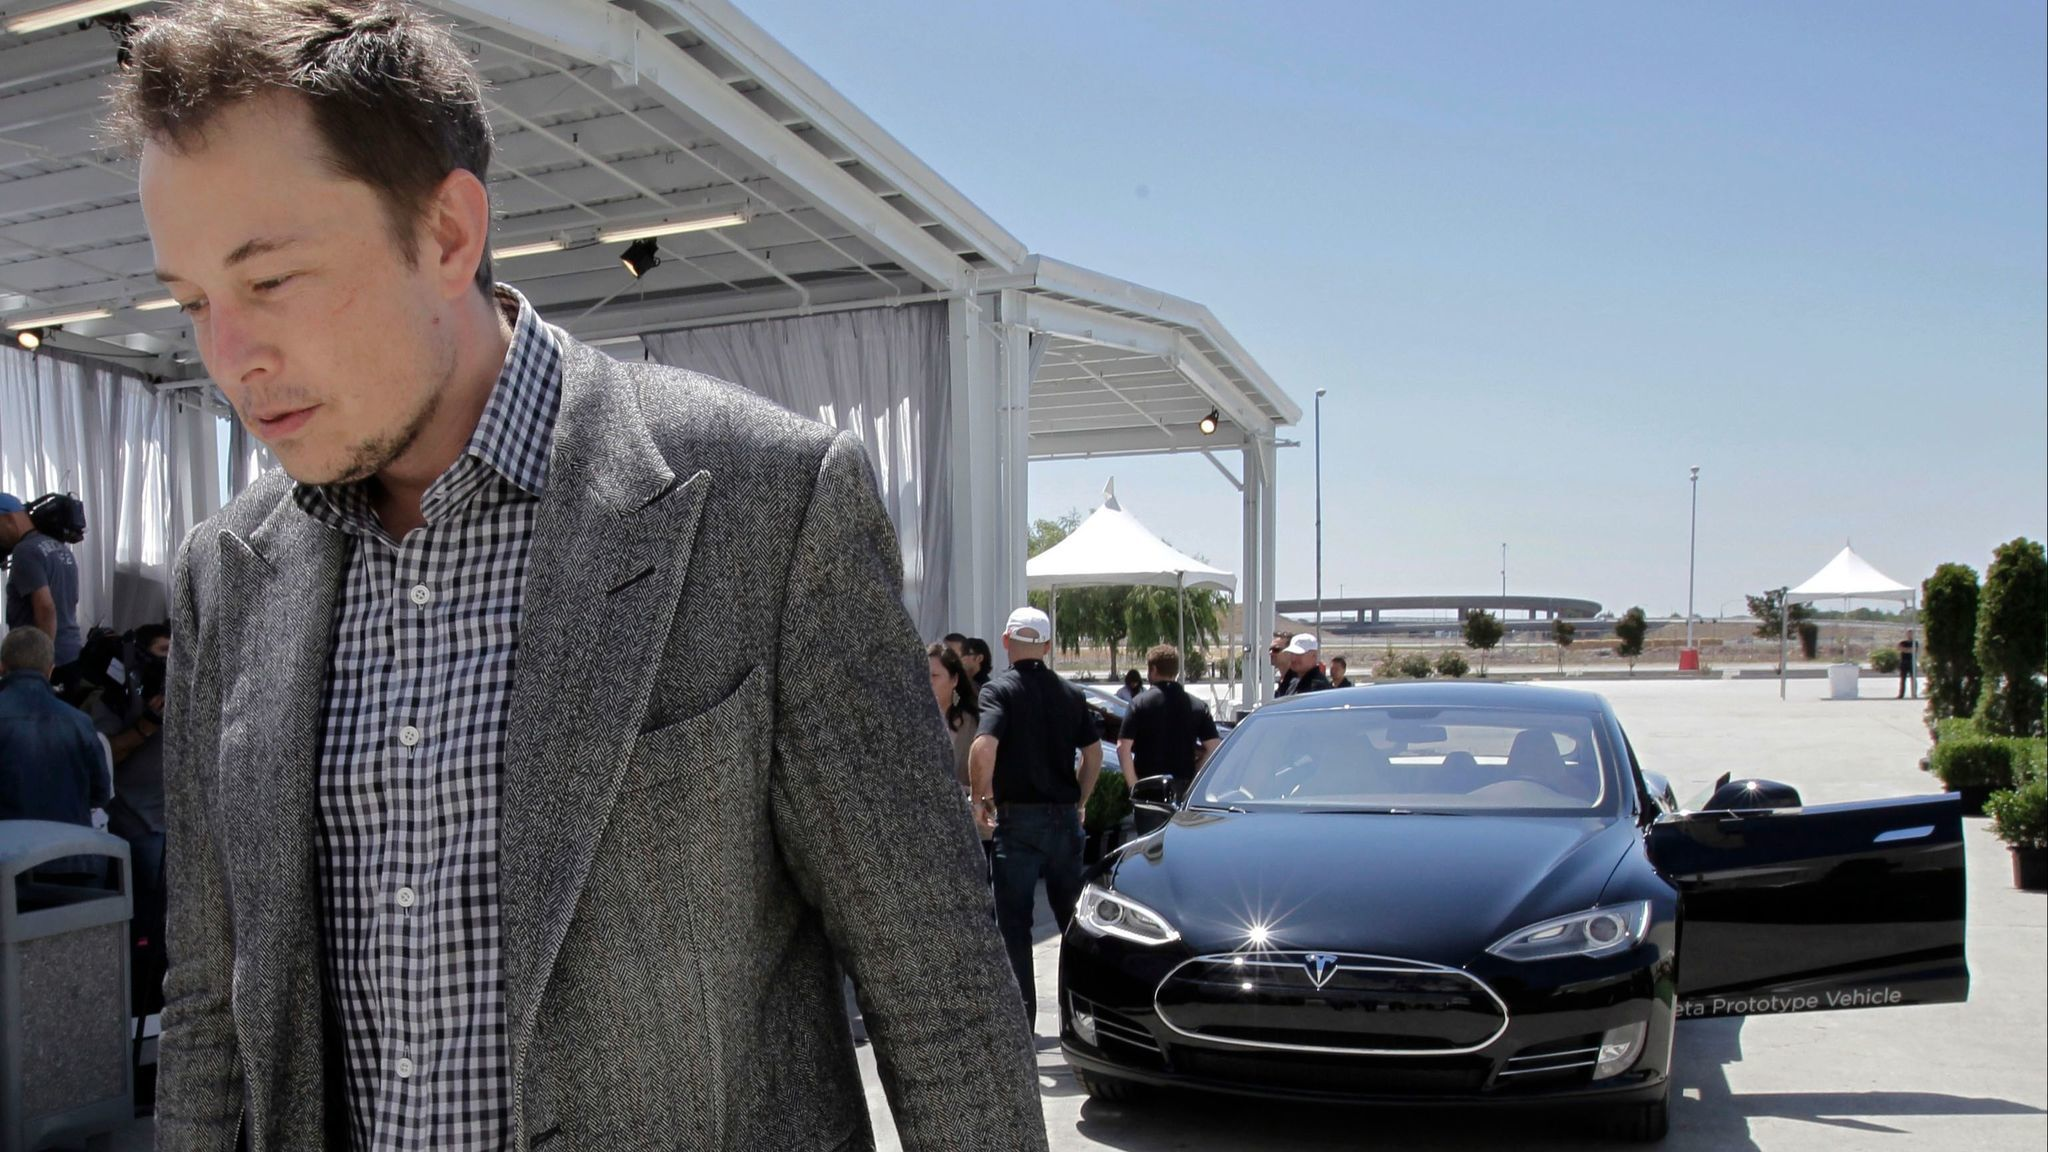 Elon Musk is seen in 2012 leaving a news conference where he blamed a shortage of lithium-ion battery cells for trouble meeting demand for the Model S.